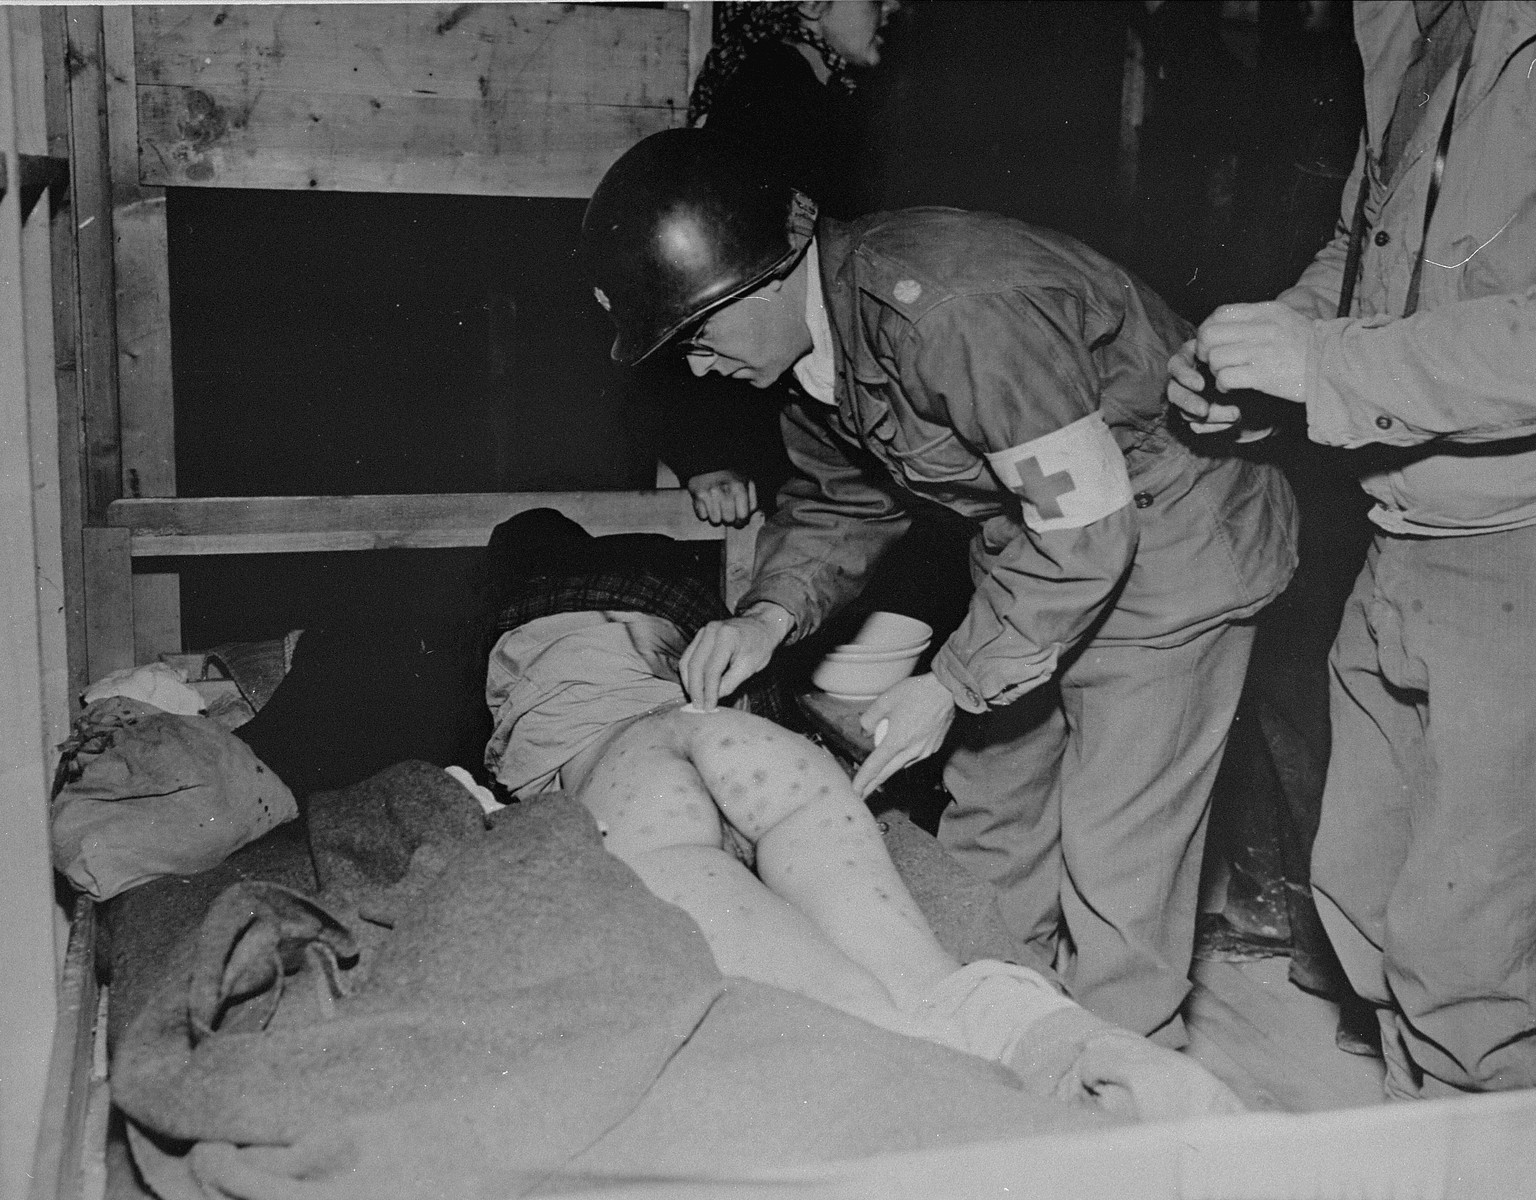 Lt. Col. J.W. Branch, Chief Surgeon of the 6th Armored Division, 3rd U.S. Army, dresses body sores of a Hungarian woman survivor in Penig, a sub-camp of Buchenwald.    Upon the approach of American troops, SS guards evacuated all those prisoners who could still walk and left behind those too ill to move.  Women in the camp suffered from starvation, typhus, diptheria, and tuberculosis.